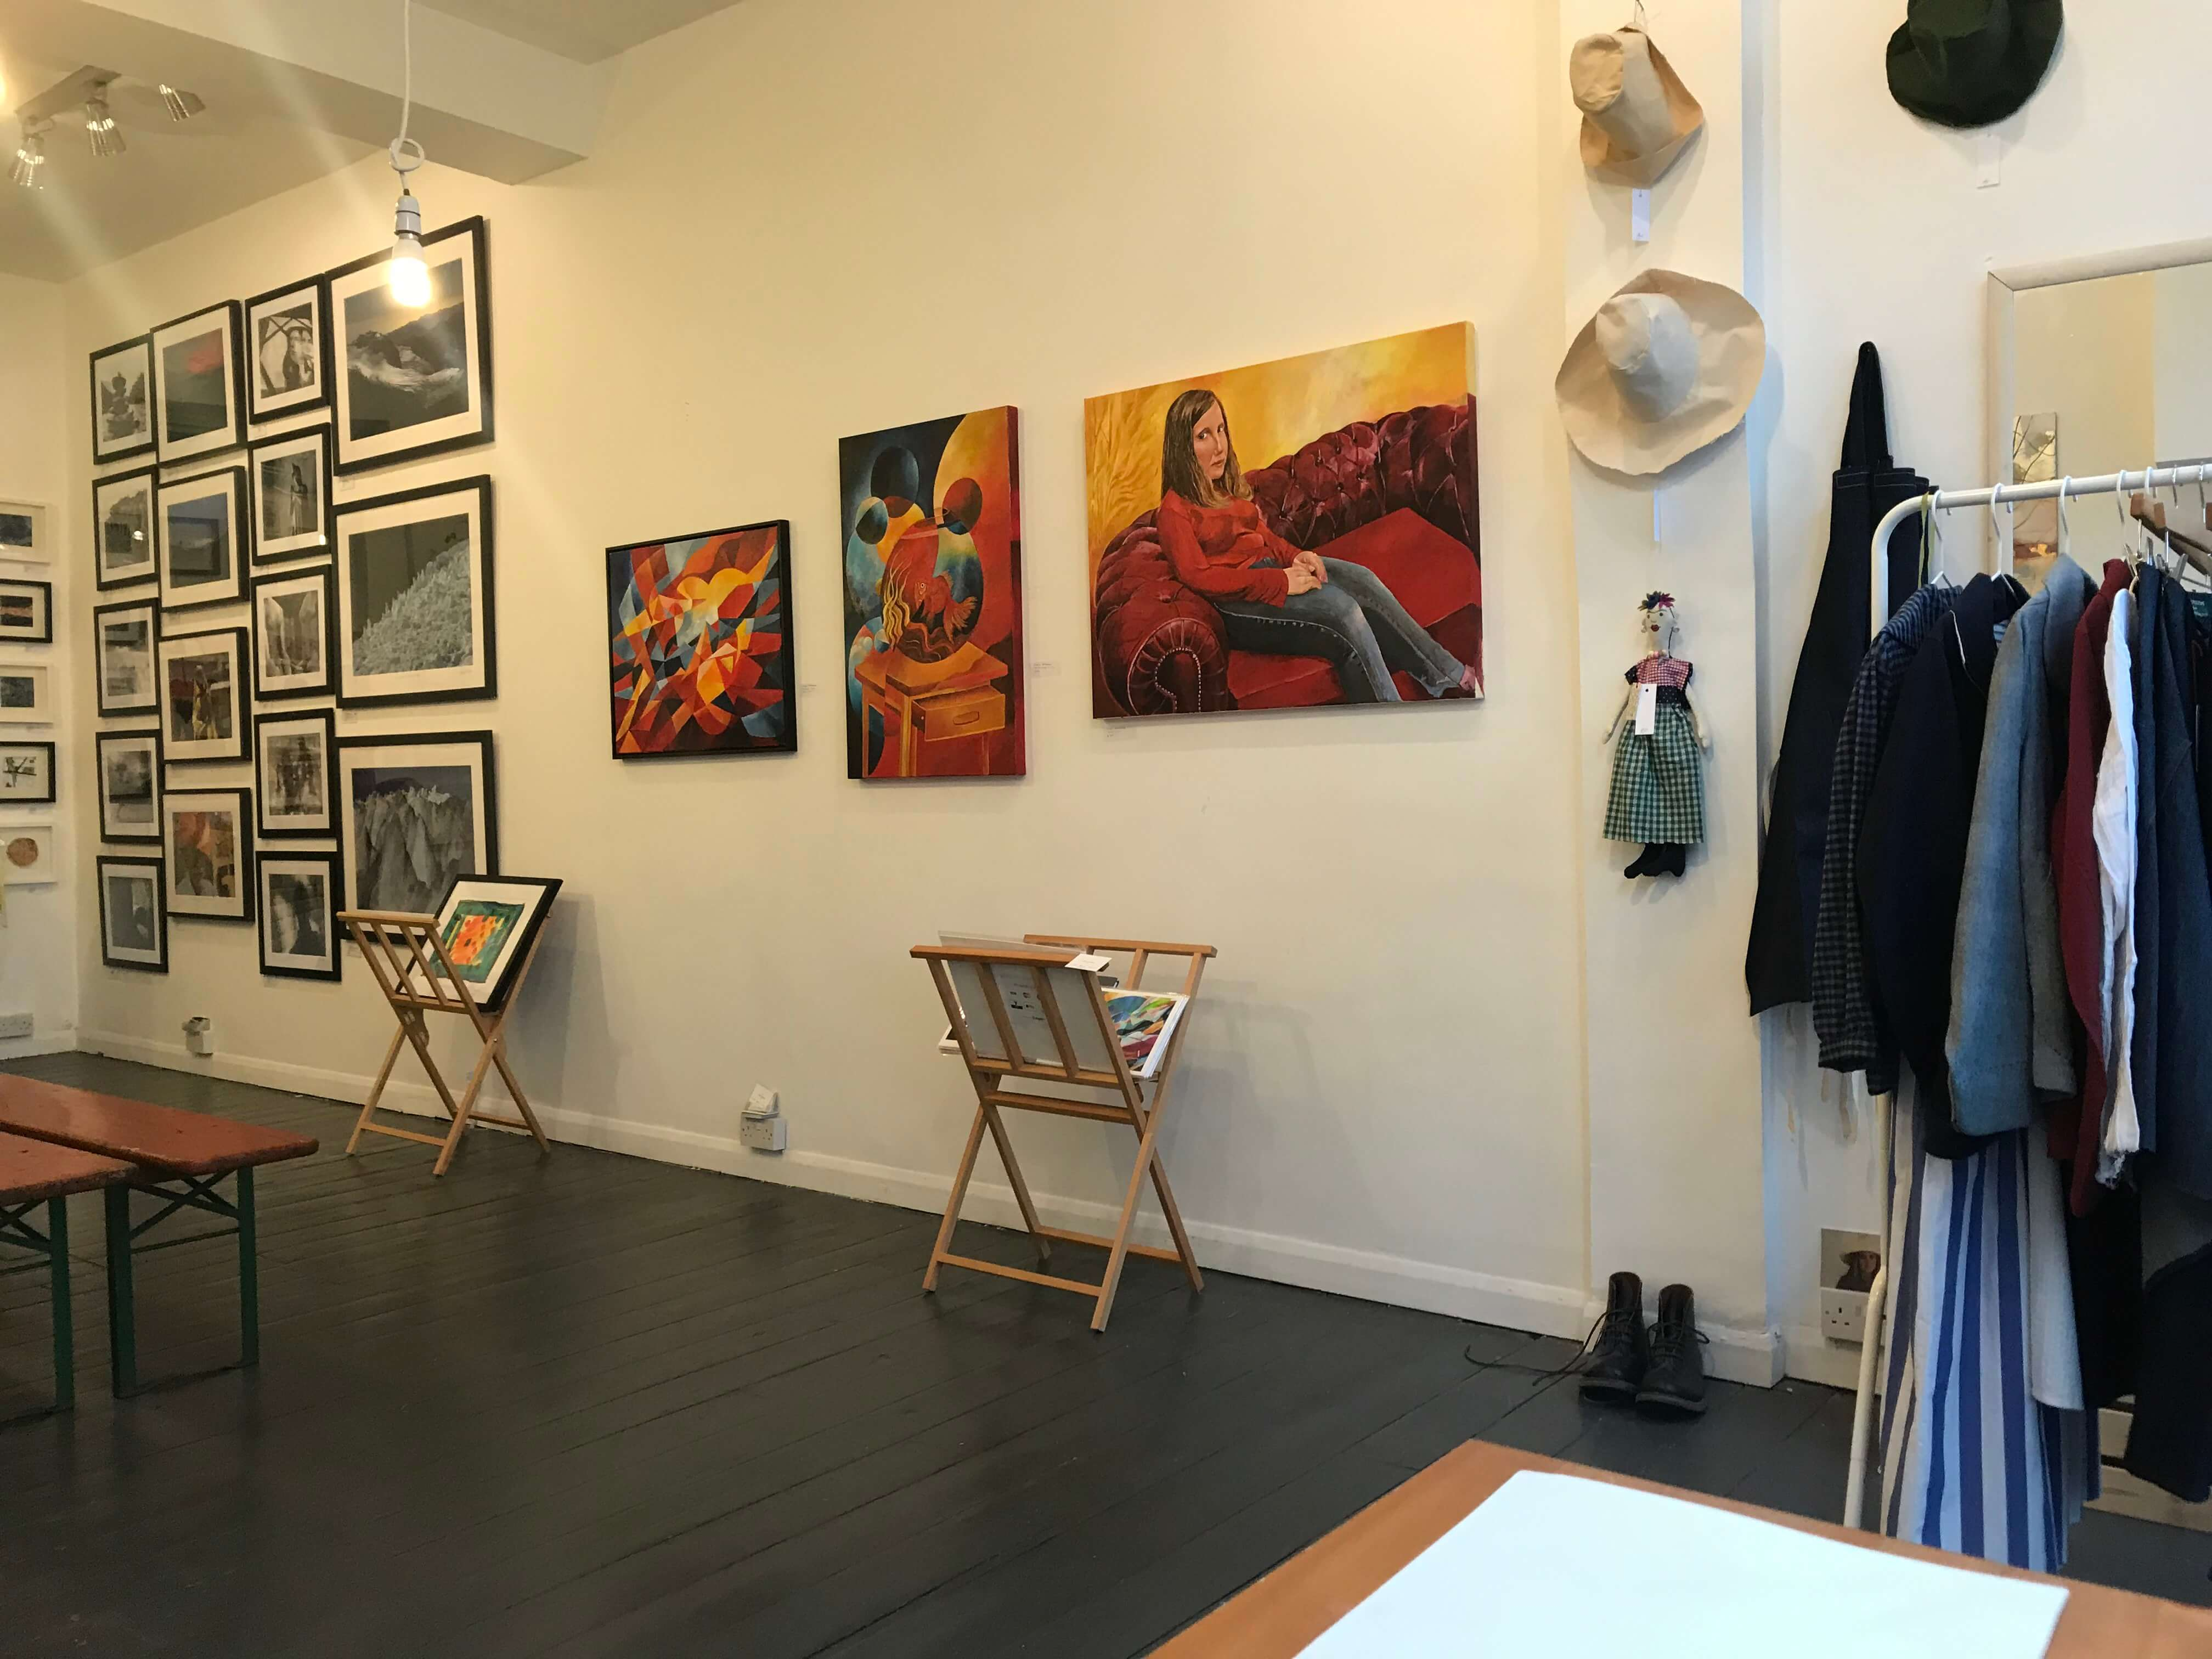 Siméon Artamonov at Nunhead Popup Art Show - Gallery 32 and Nunhead Art Trail 2019, from 20/09/2019 to 19/10/2019